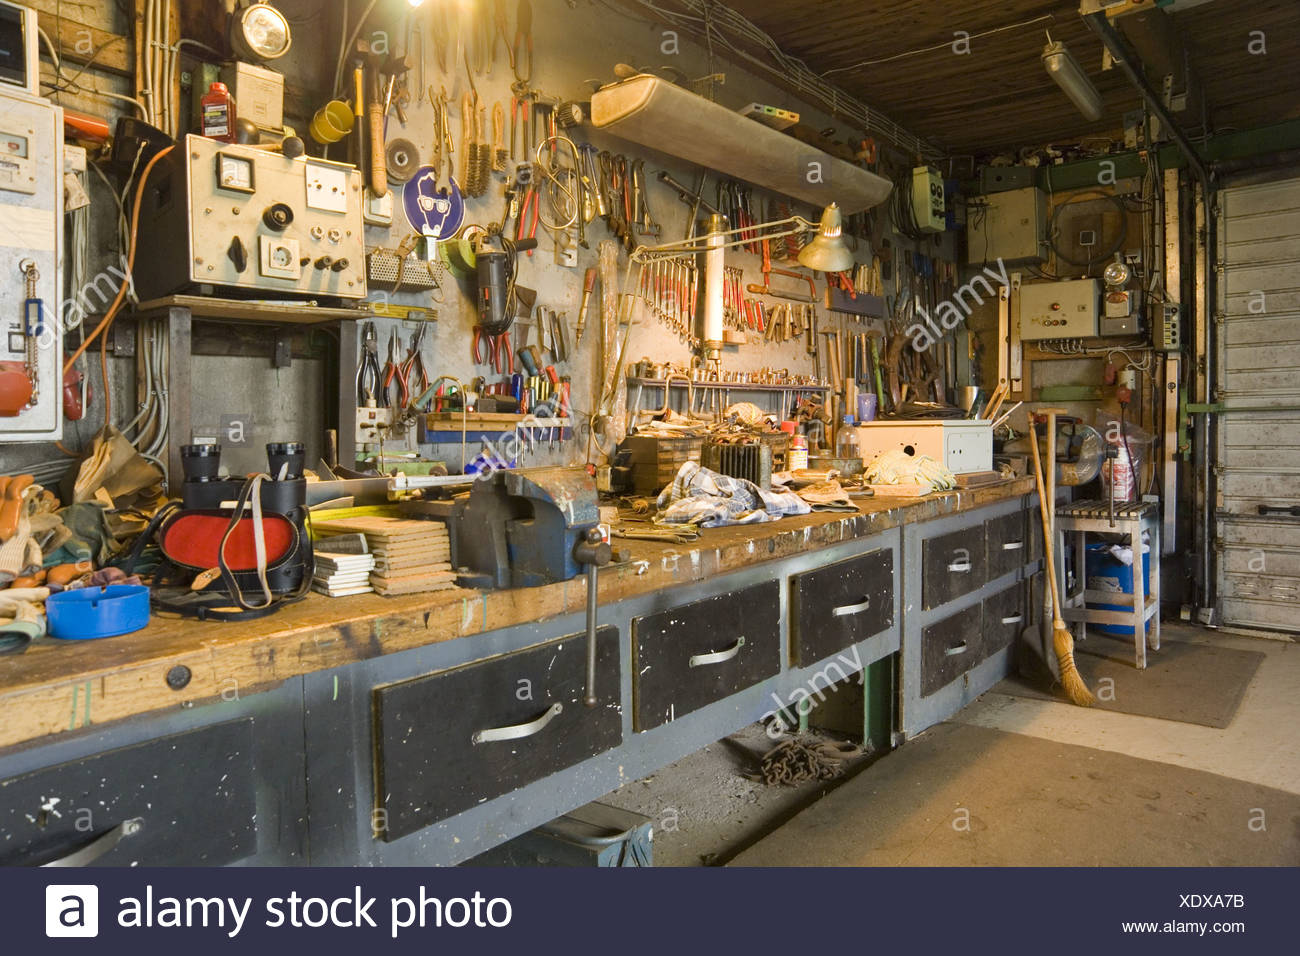 Verrassend interior garage hobby-workshop Stock Photo: 283935215 - Alamy GK-55